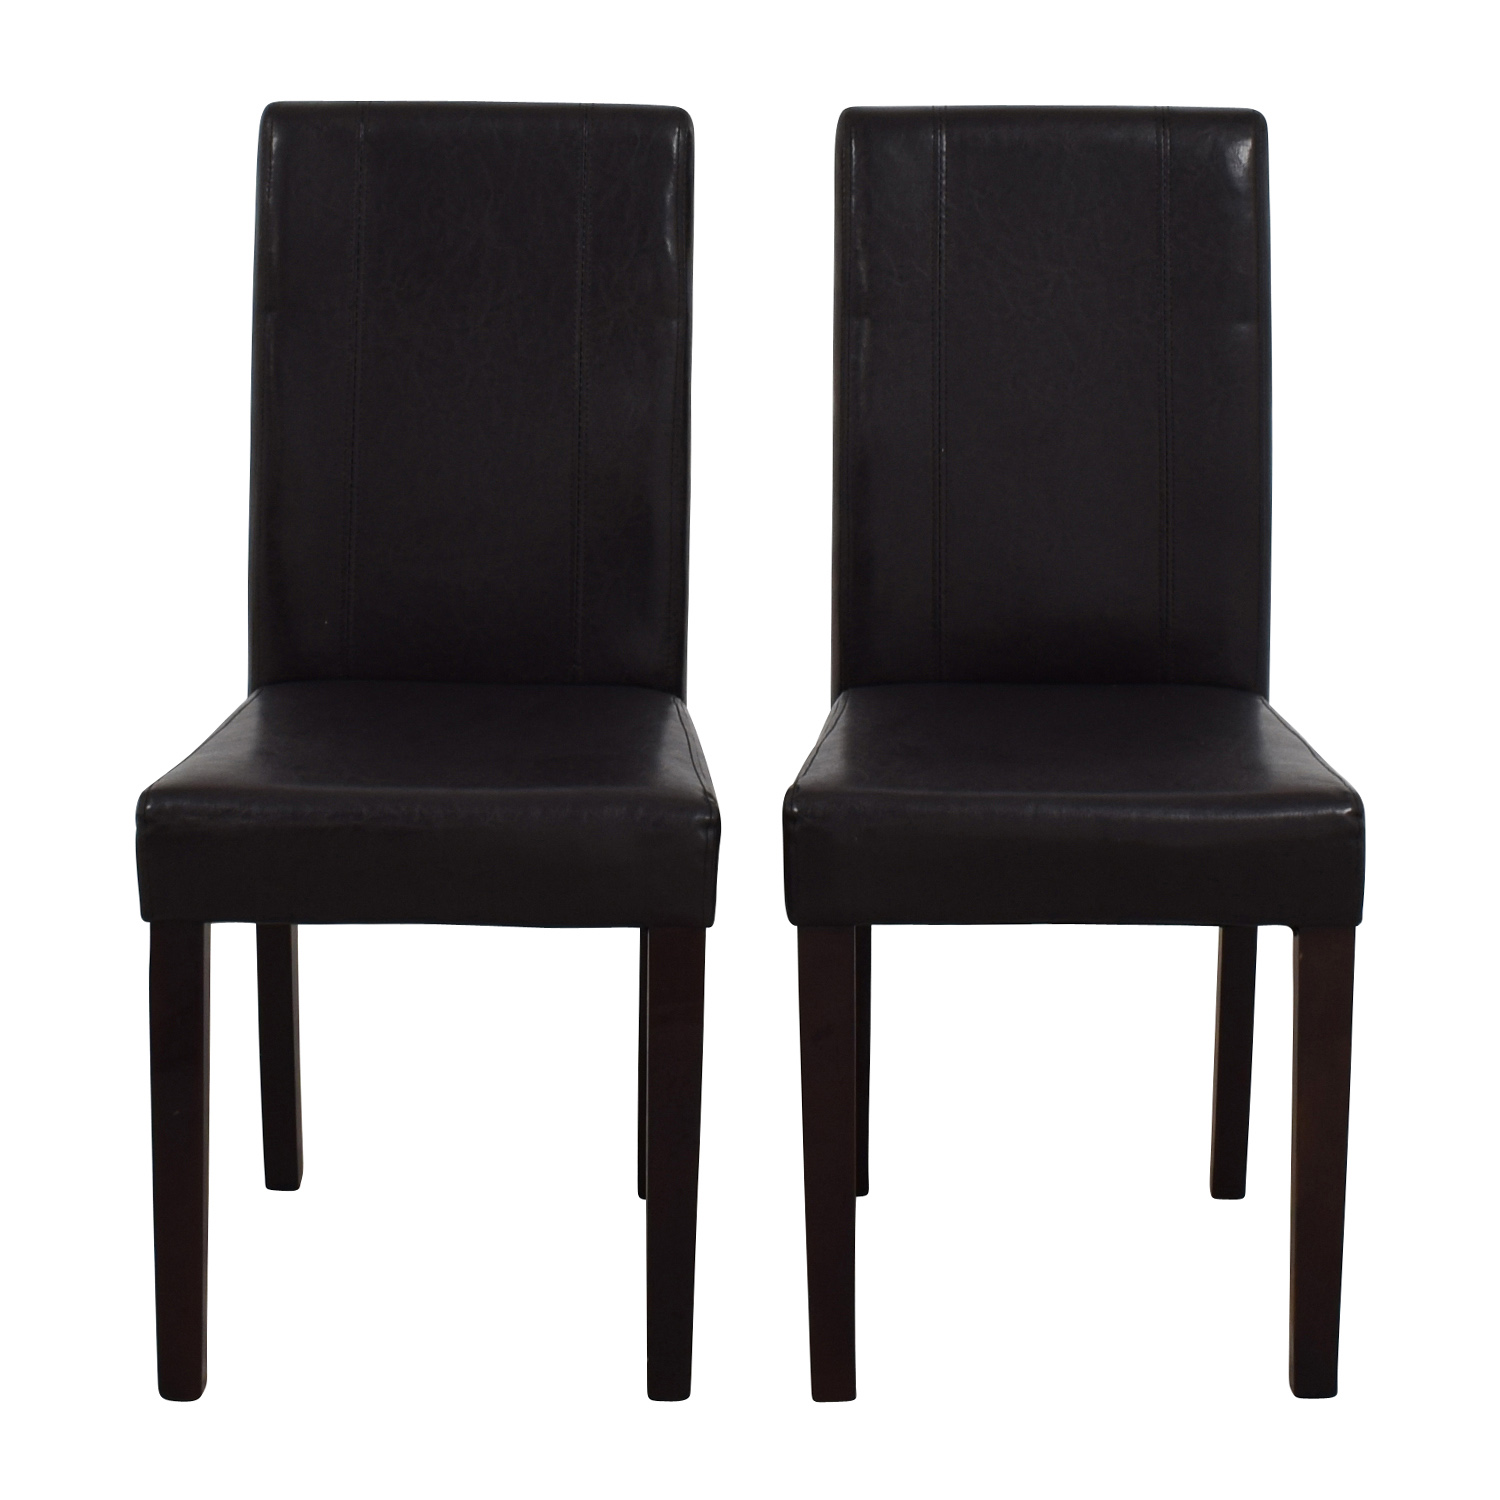 47% OFF   Roundhill Furniture Roundhill Solid Wood Leatherette Padded  Parson Chairs / Chairs